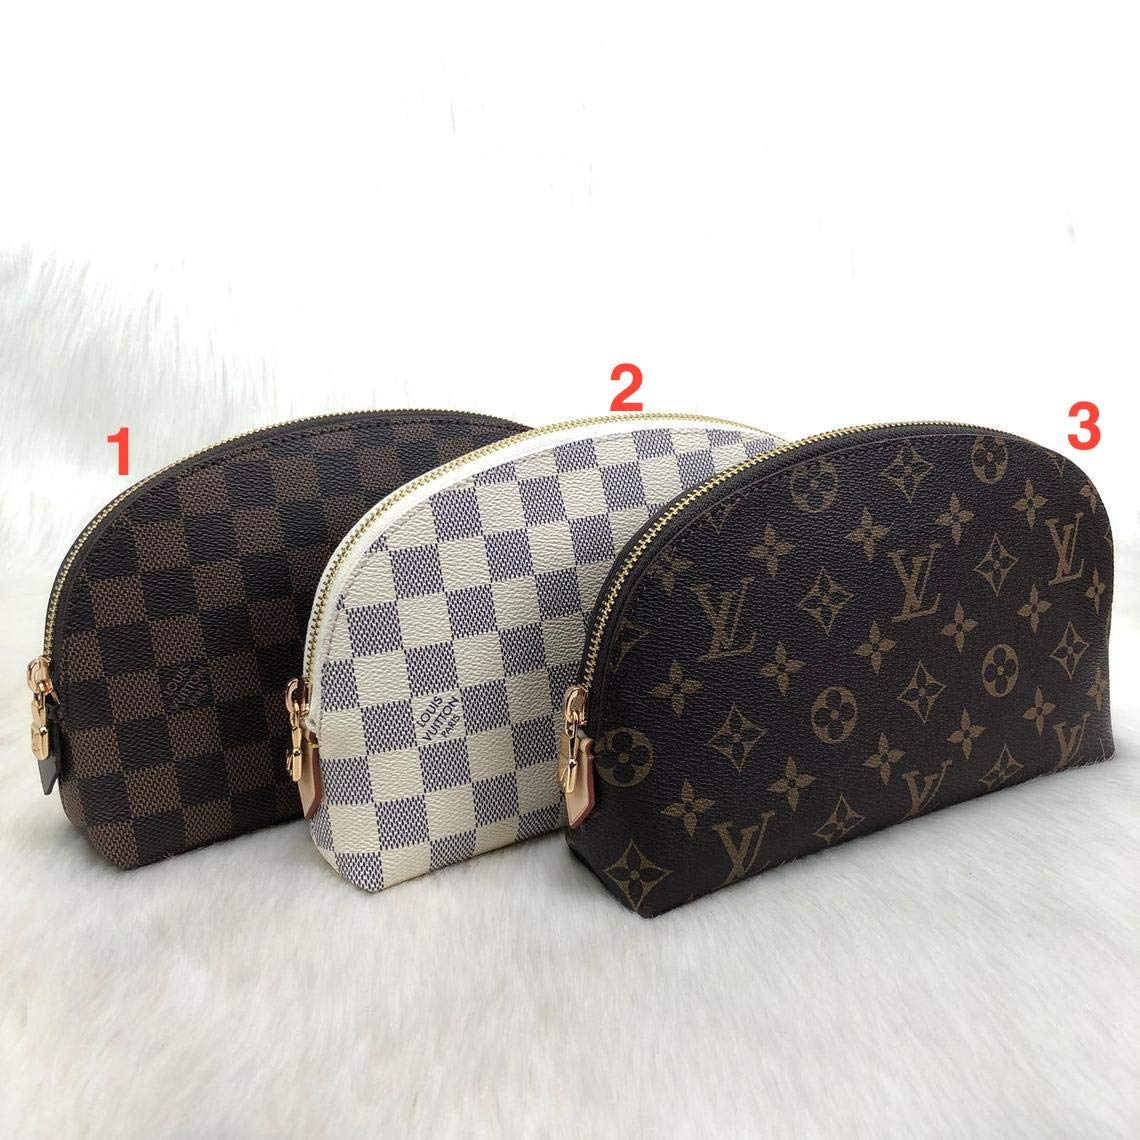 c672022748ac Amazon.com: Louis Vuitton Leather Cosmetic Bag HandMade by ...